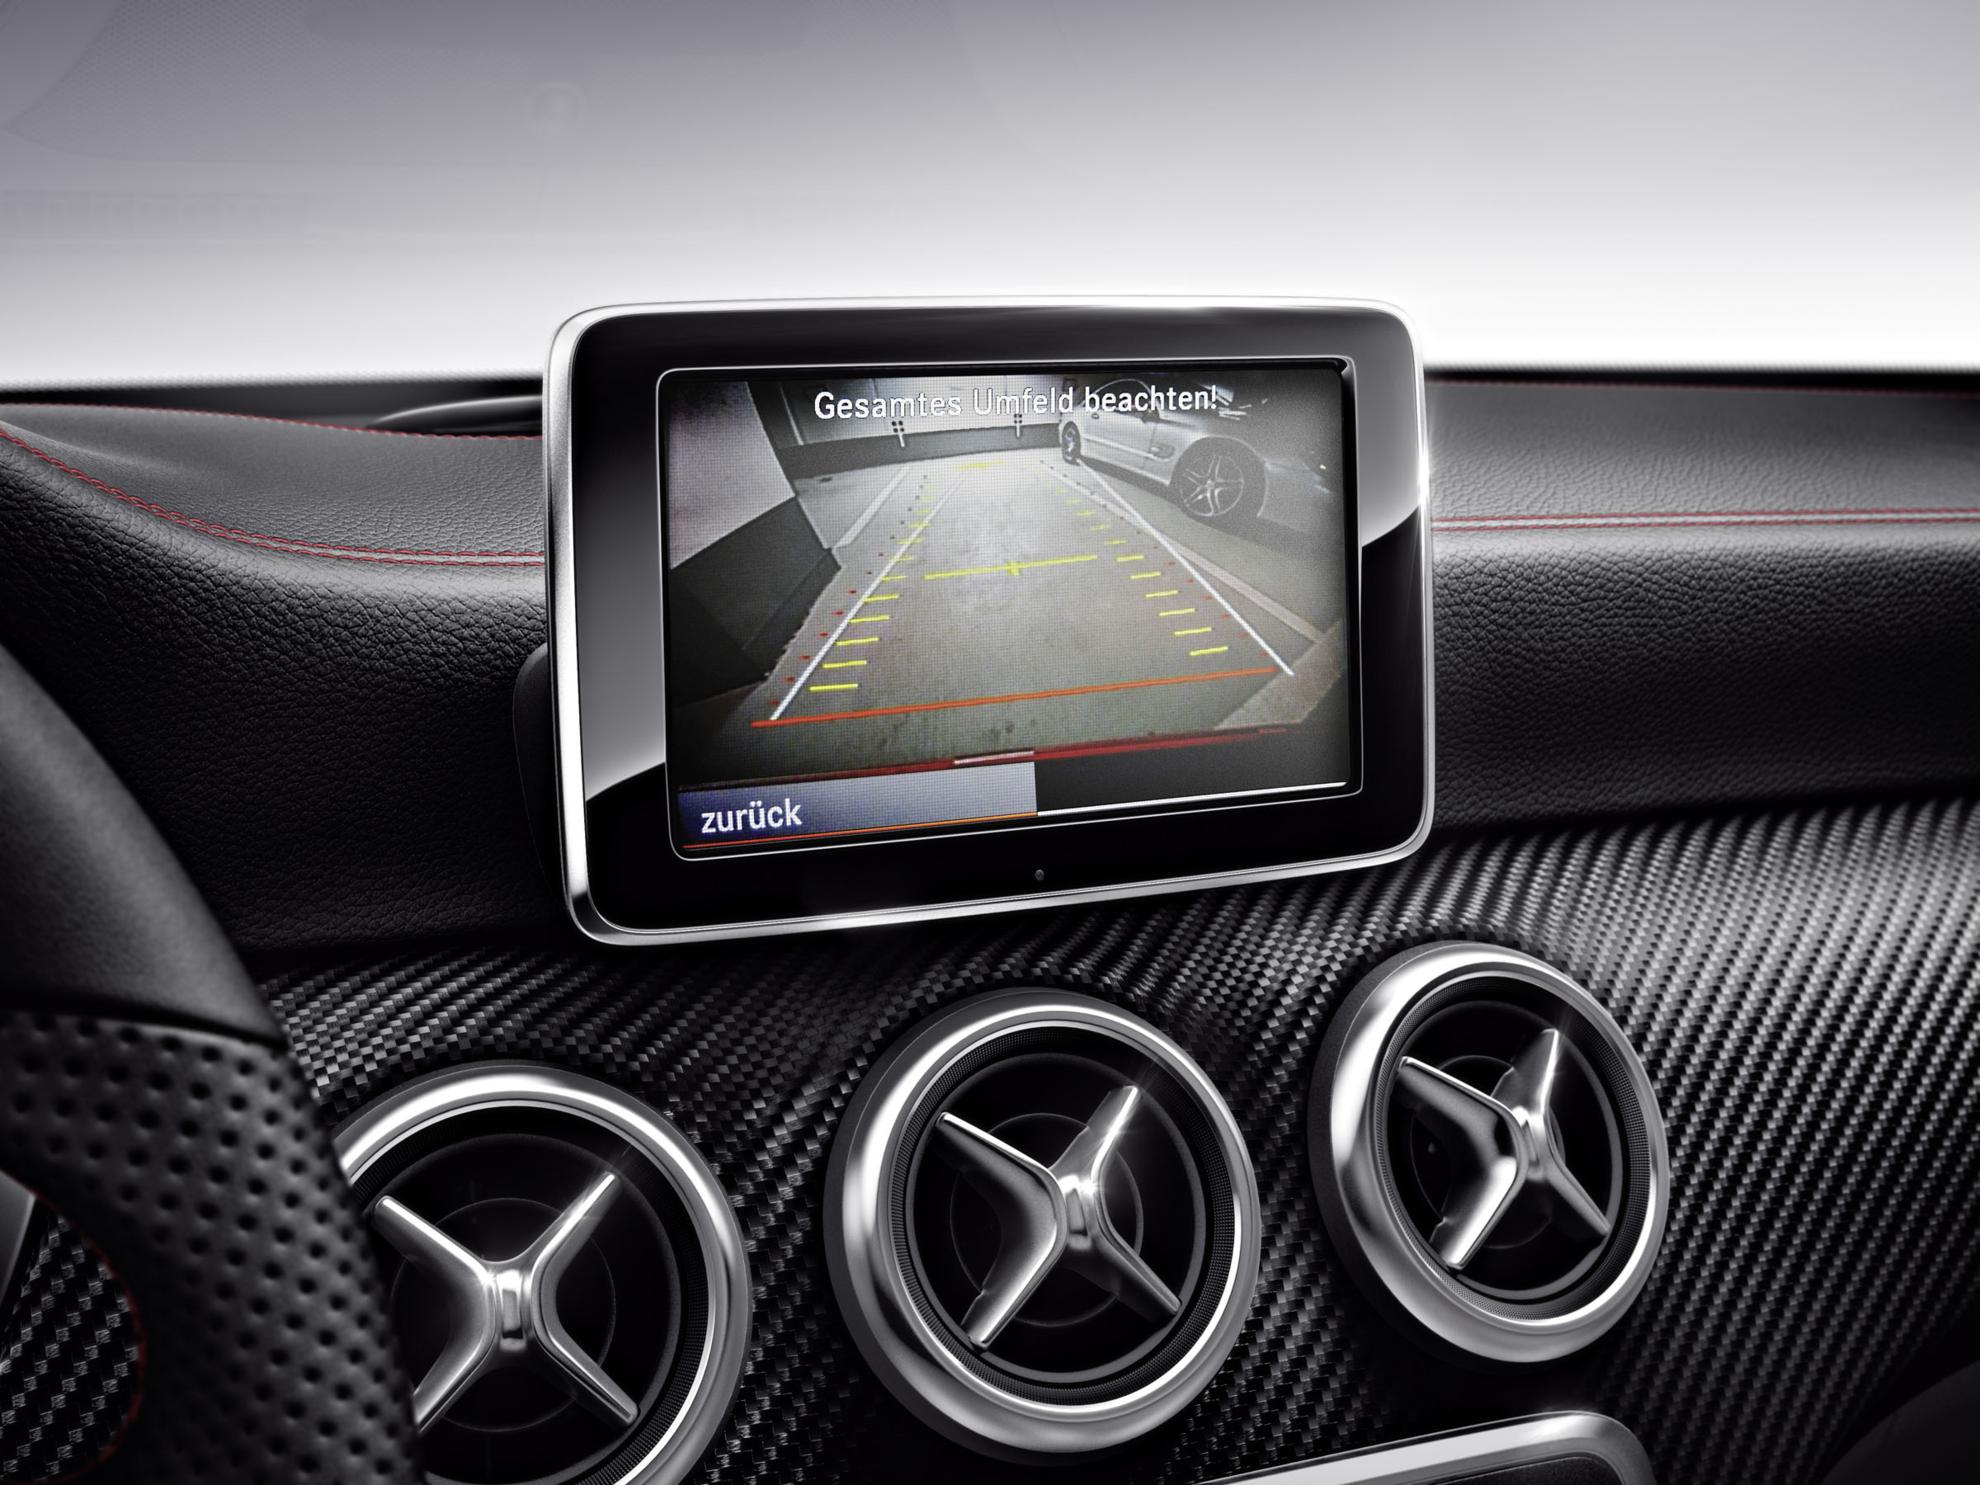 Mercedes-Benz Applications